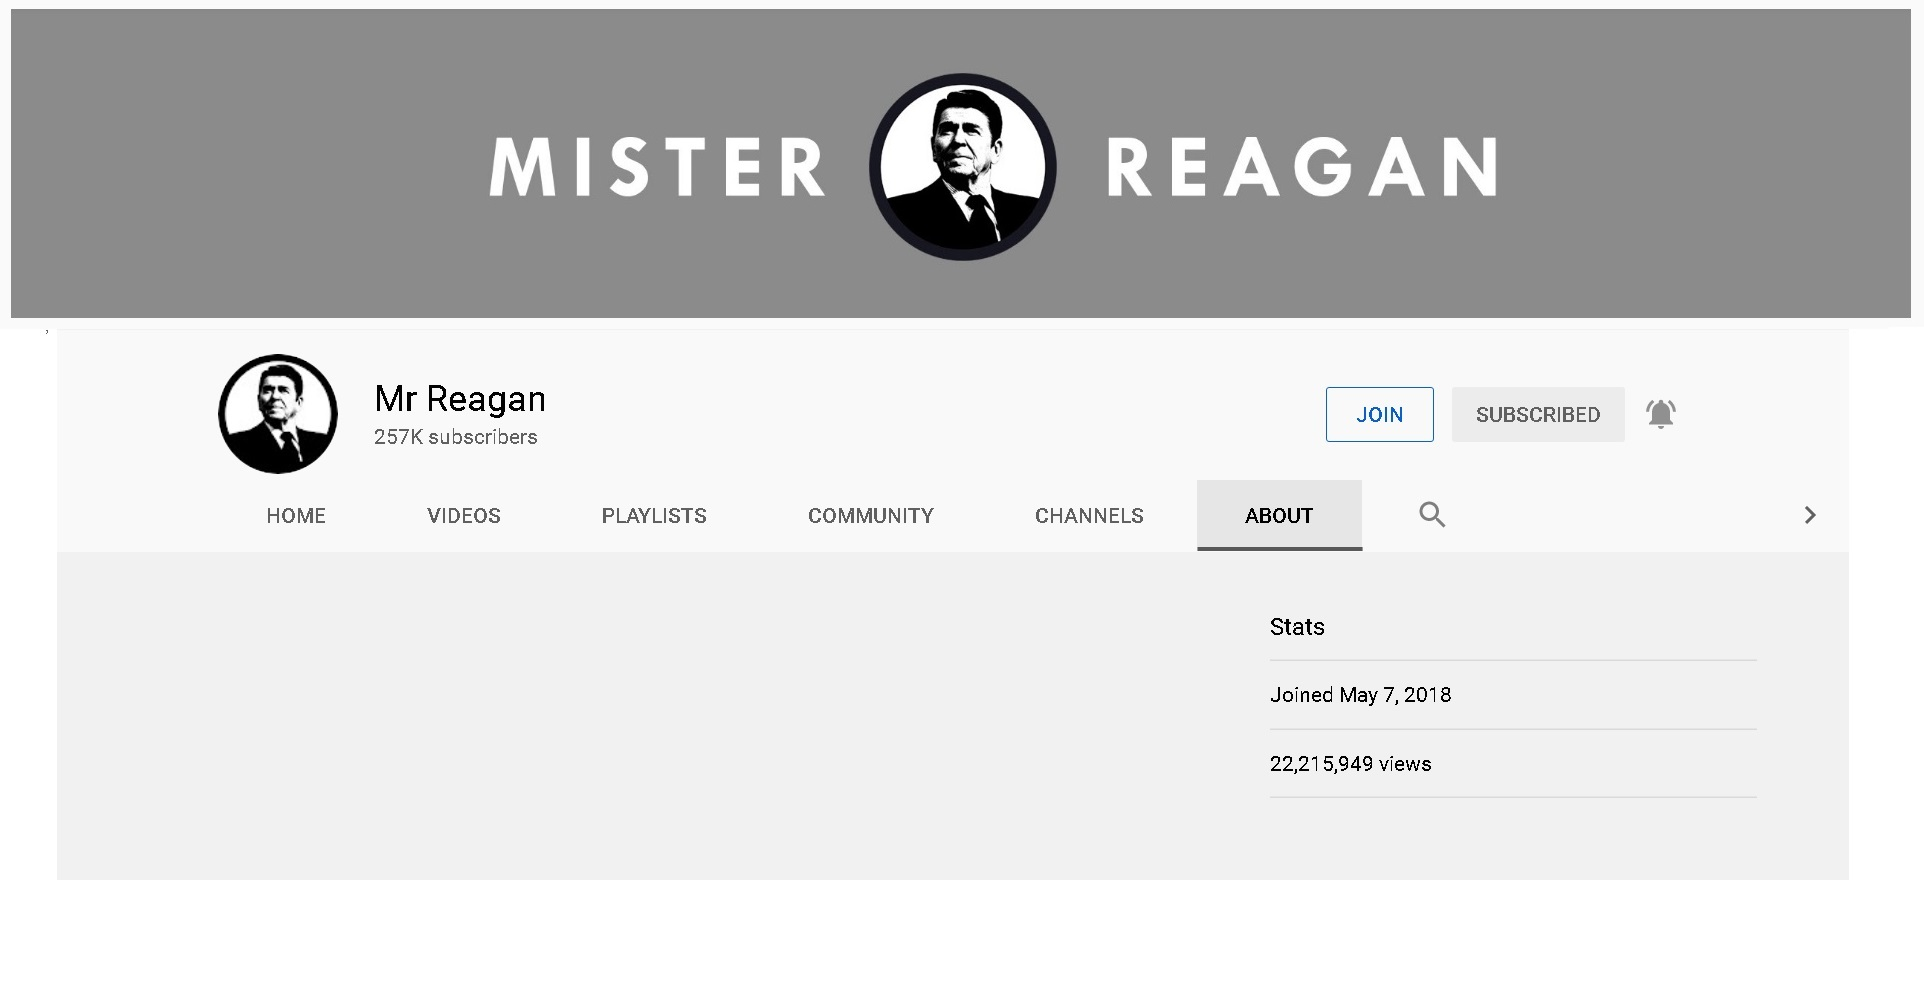 Mr Reagan